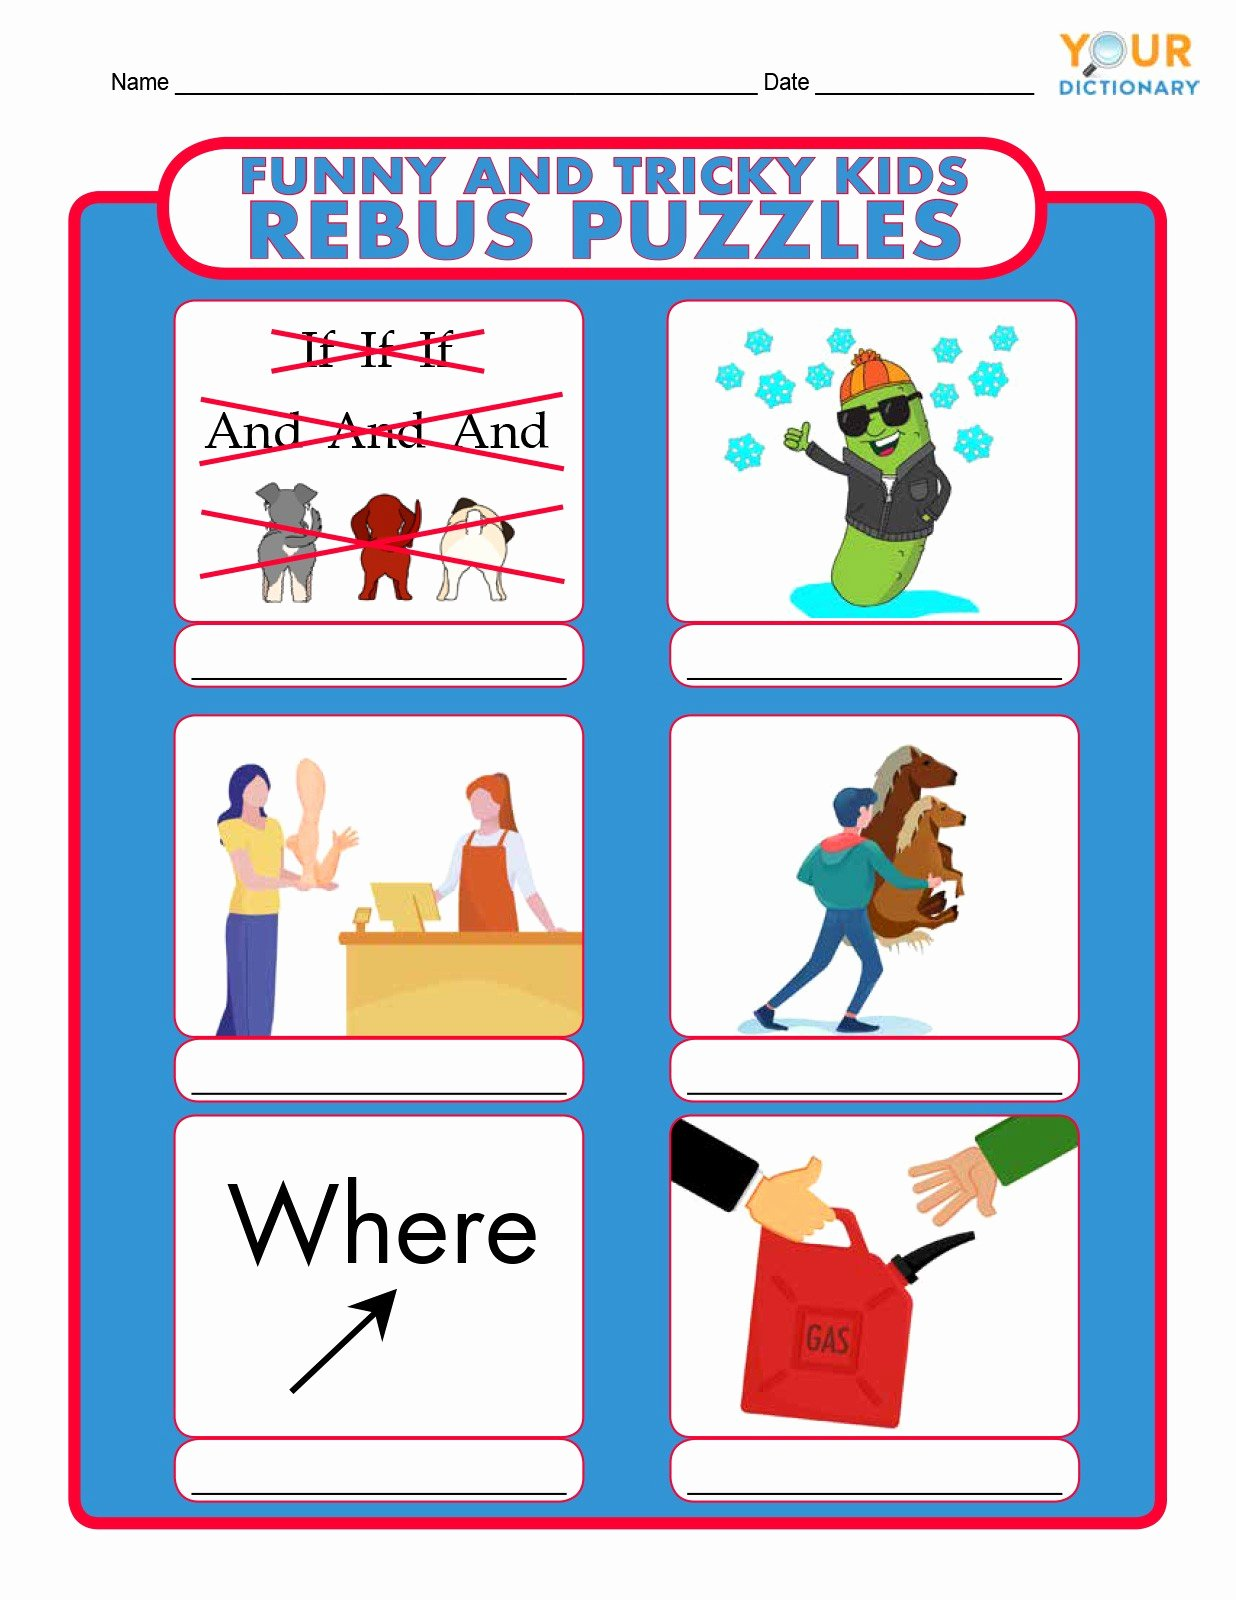 Printable Rebus Puzzles for Kids Inspirational Rebus Puzzles for Kids